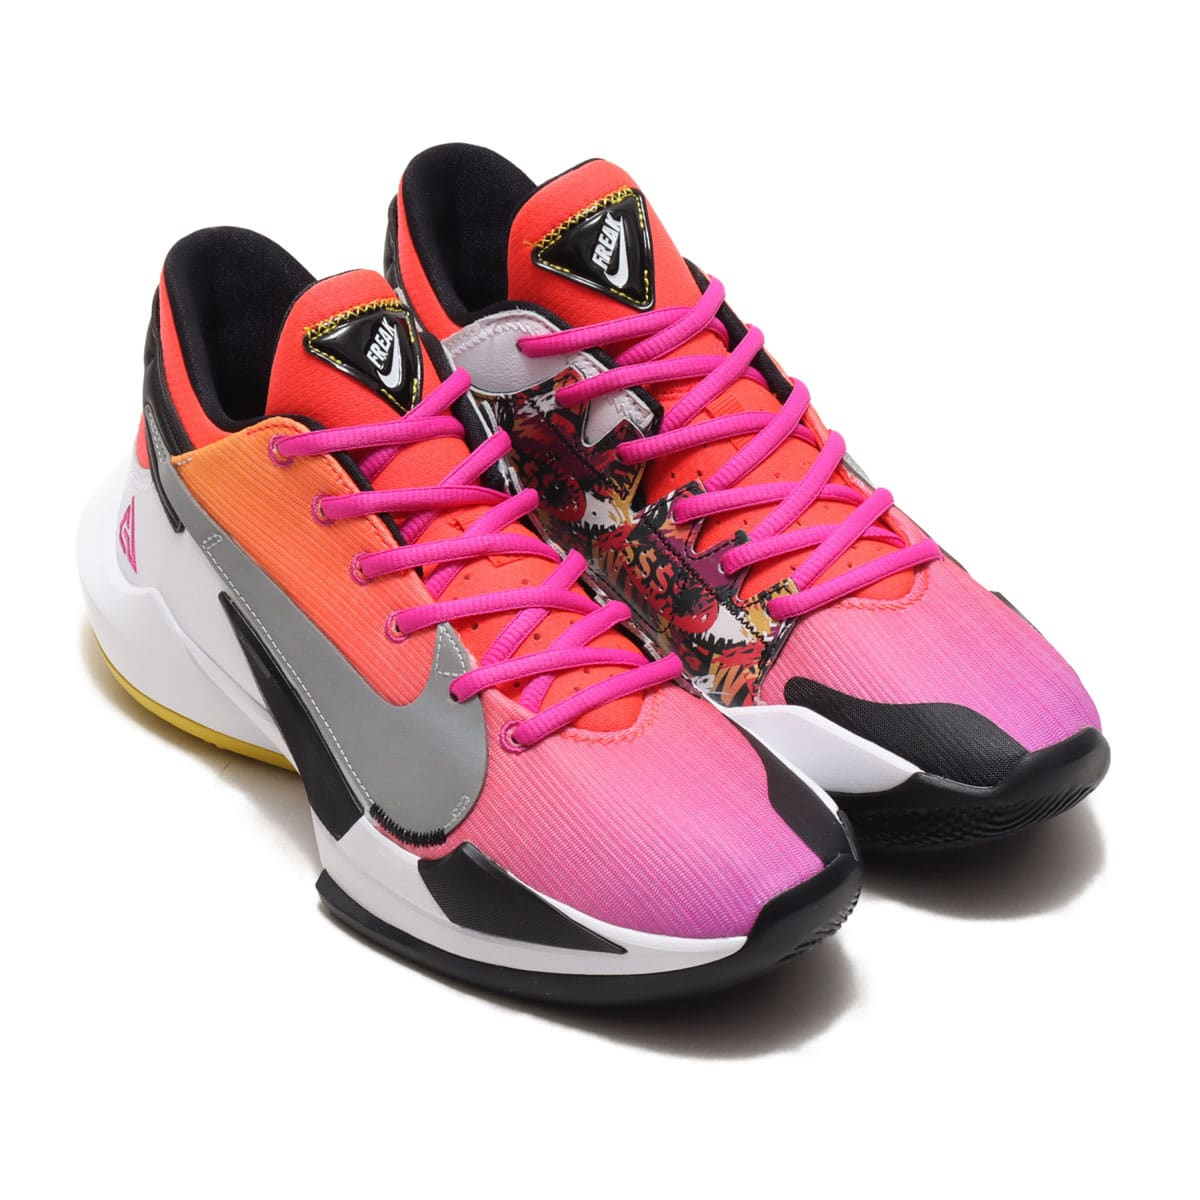 NIKE ZOOM FREAK 2 BRIGHT CRIMSON/BLACK-FIRE PINK-WHITE 20HO-S_photo_large